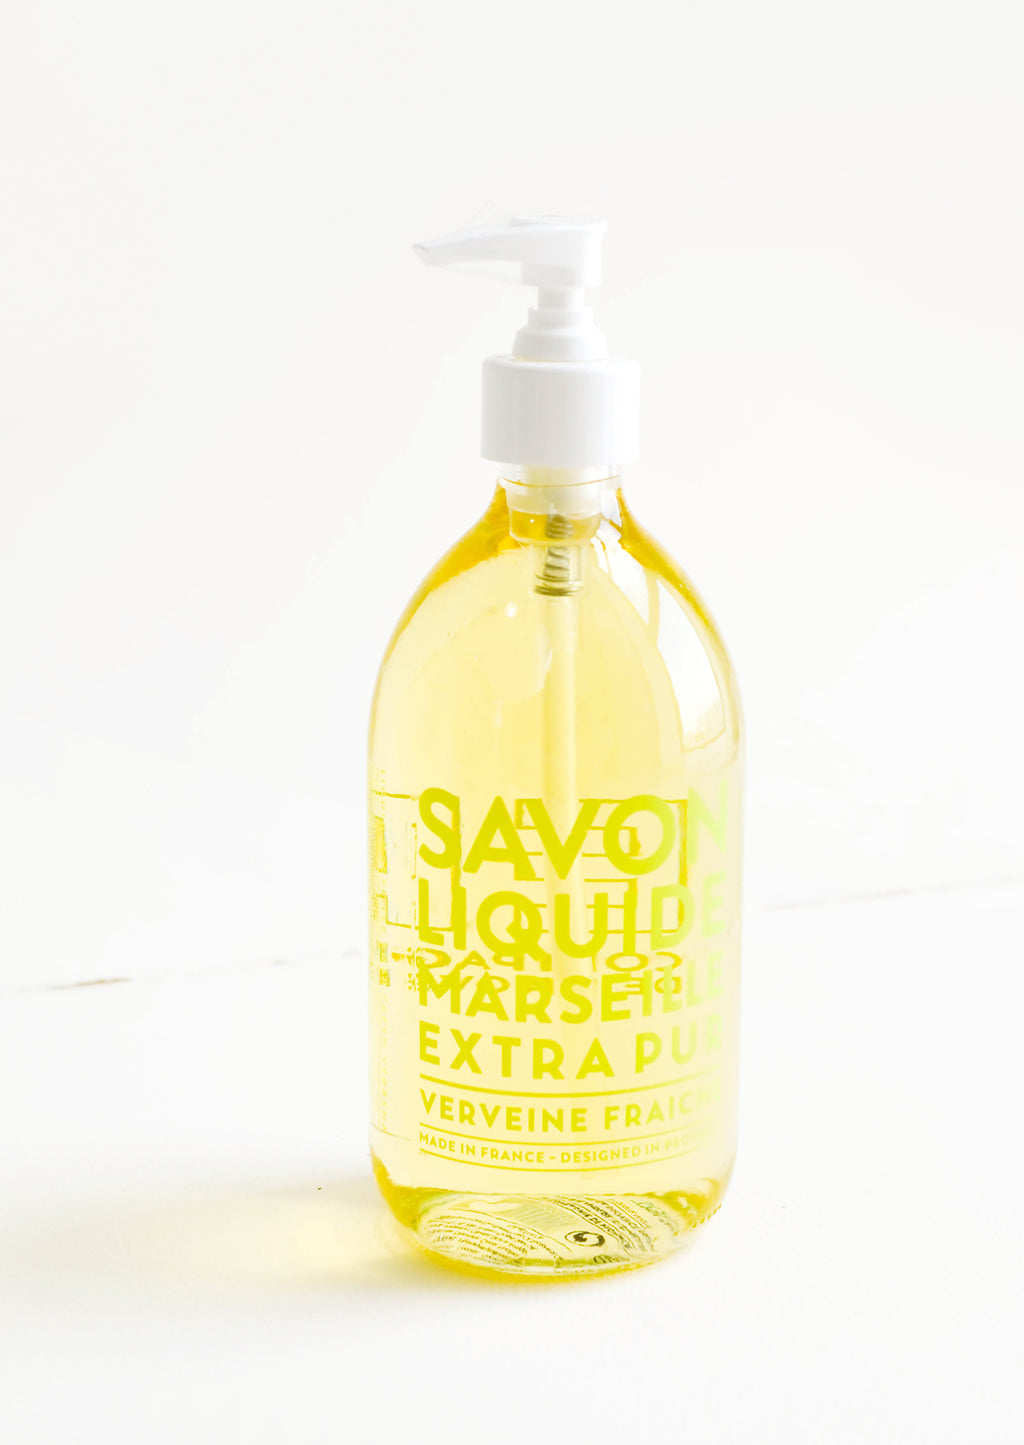 4: A clear glass soap bottle with pale yellow interior liquid, lime green text, and a white plastic dispenser.